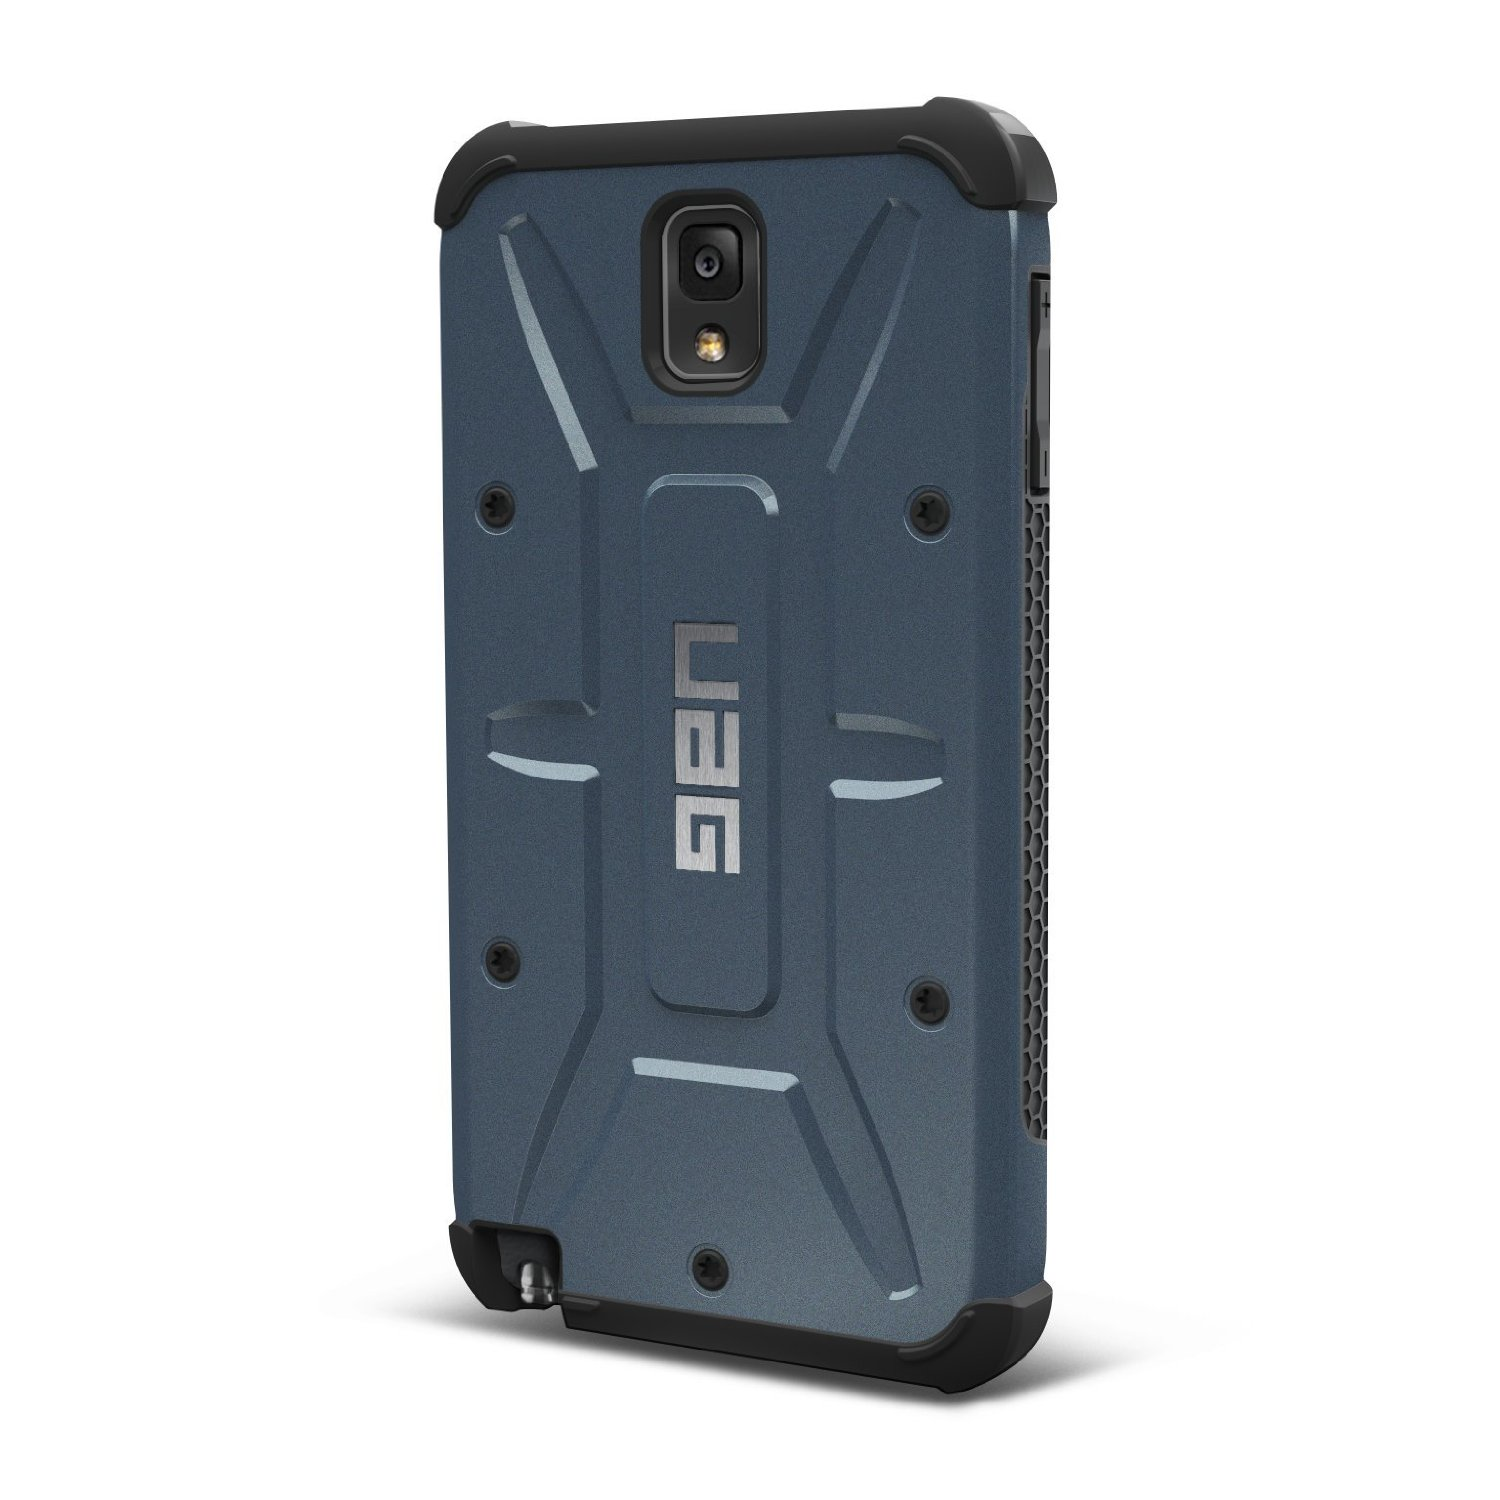 Case Design amazon phone cases note 3 : Urban Armor Gear (UAG) Case for Samsung Galaxy Note 3 slate